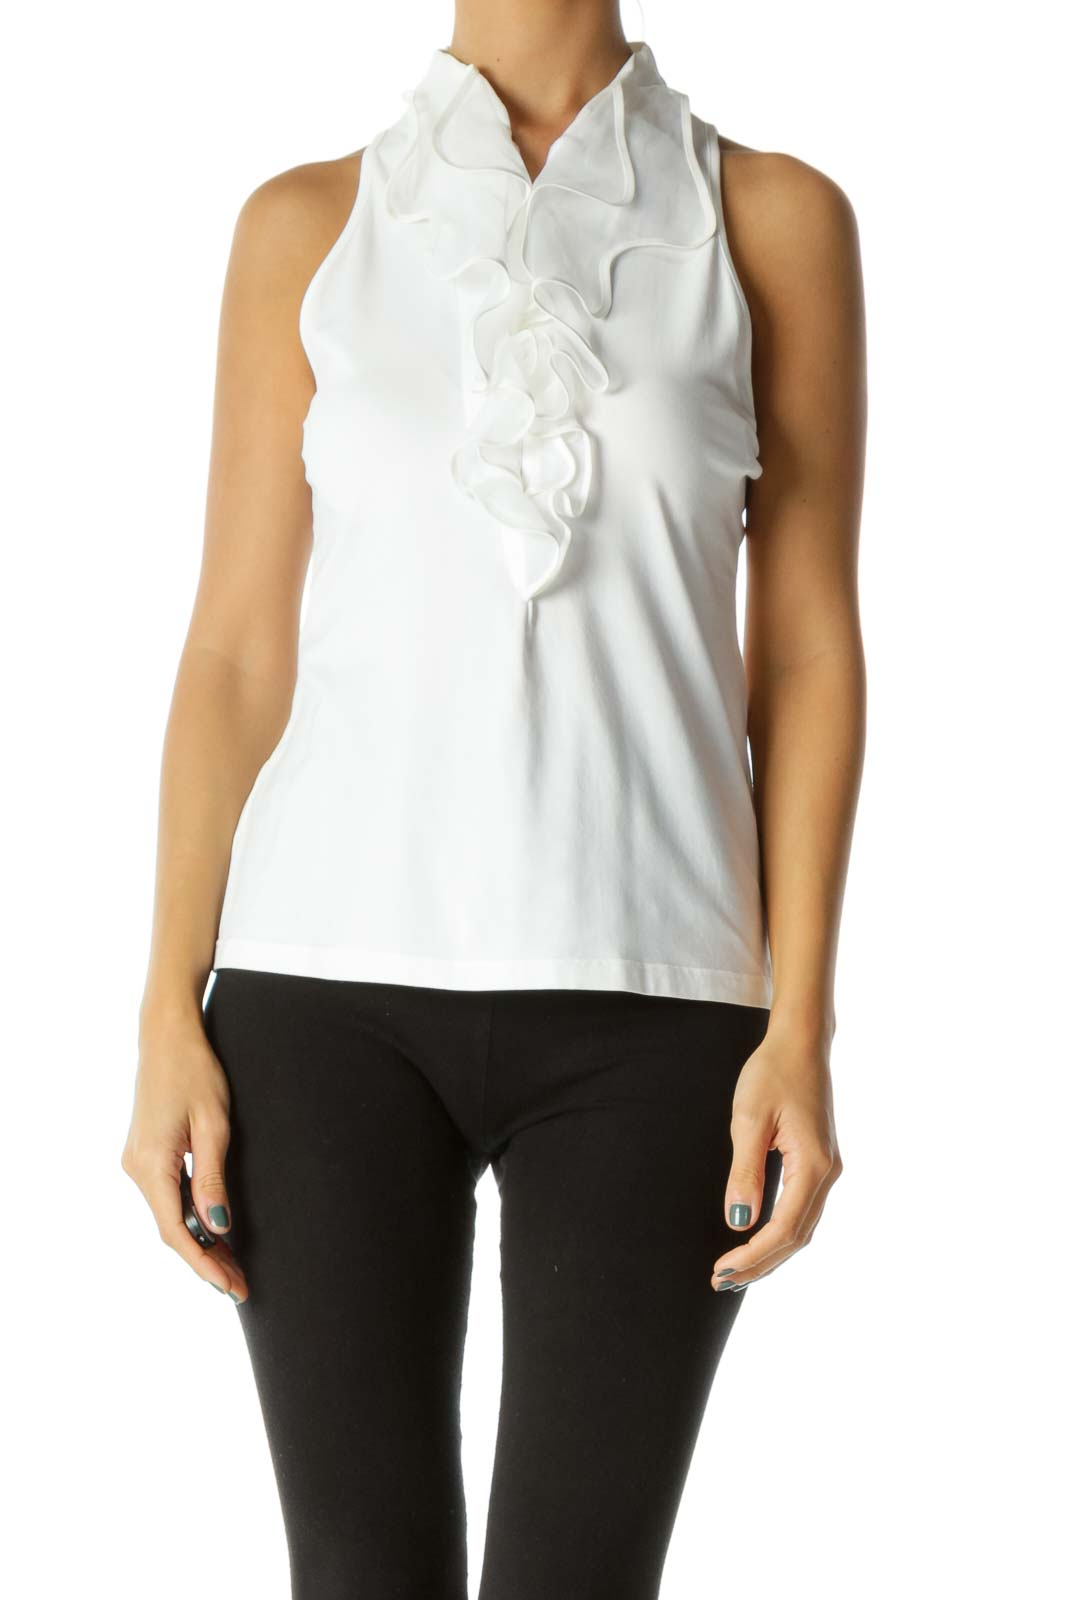 Cream Structured Ruffles Zippered Front Stretch Tank Top Front